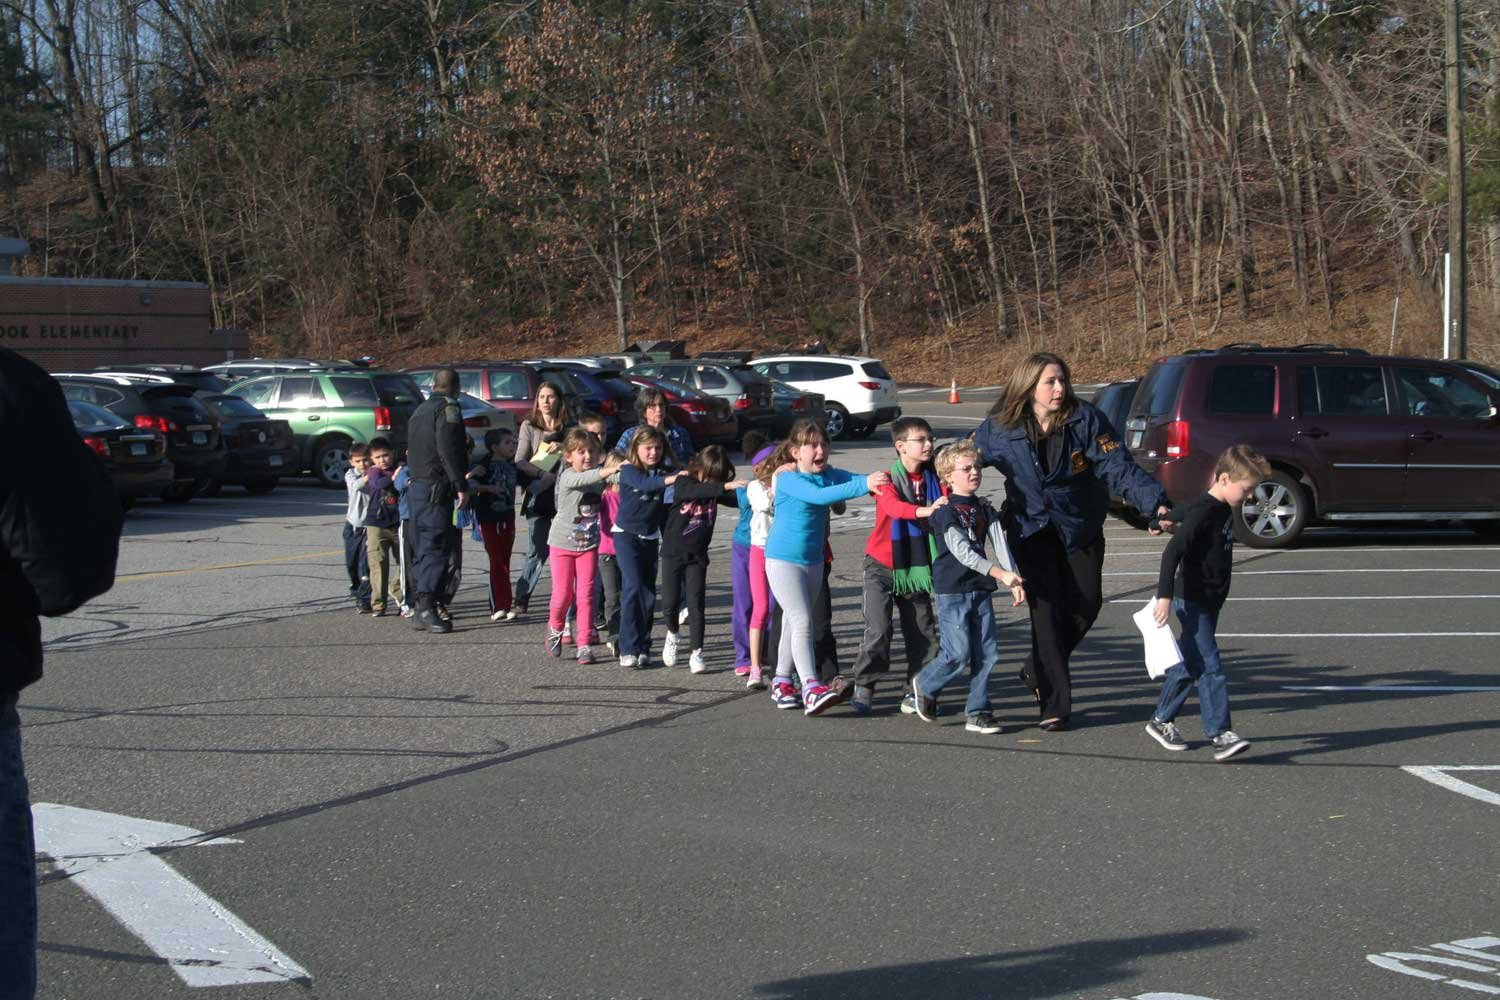 The Story Behind the Iconic Photograph from Sandy Hook | Time.com